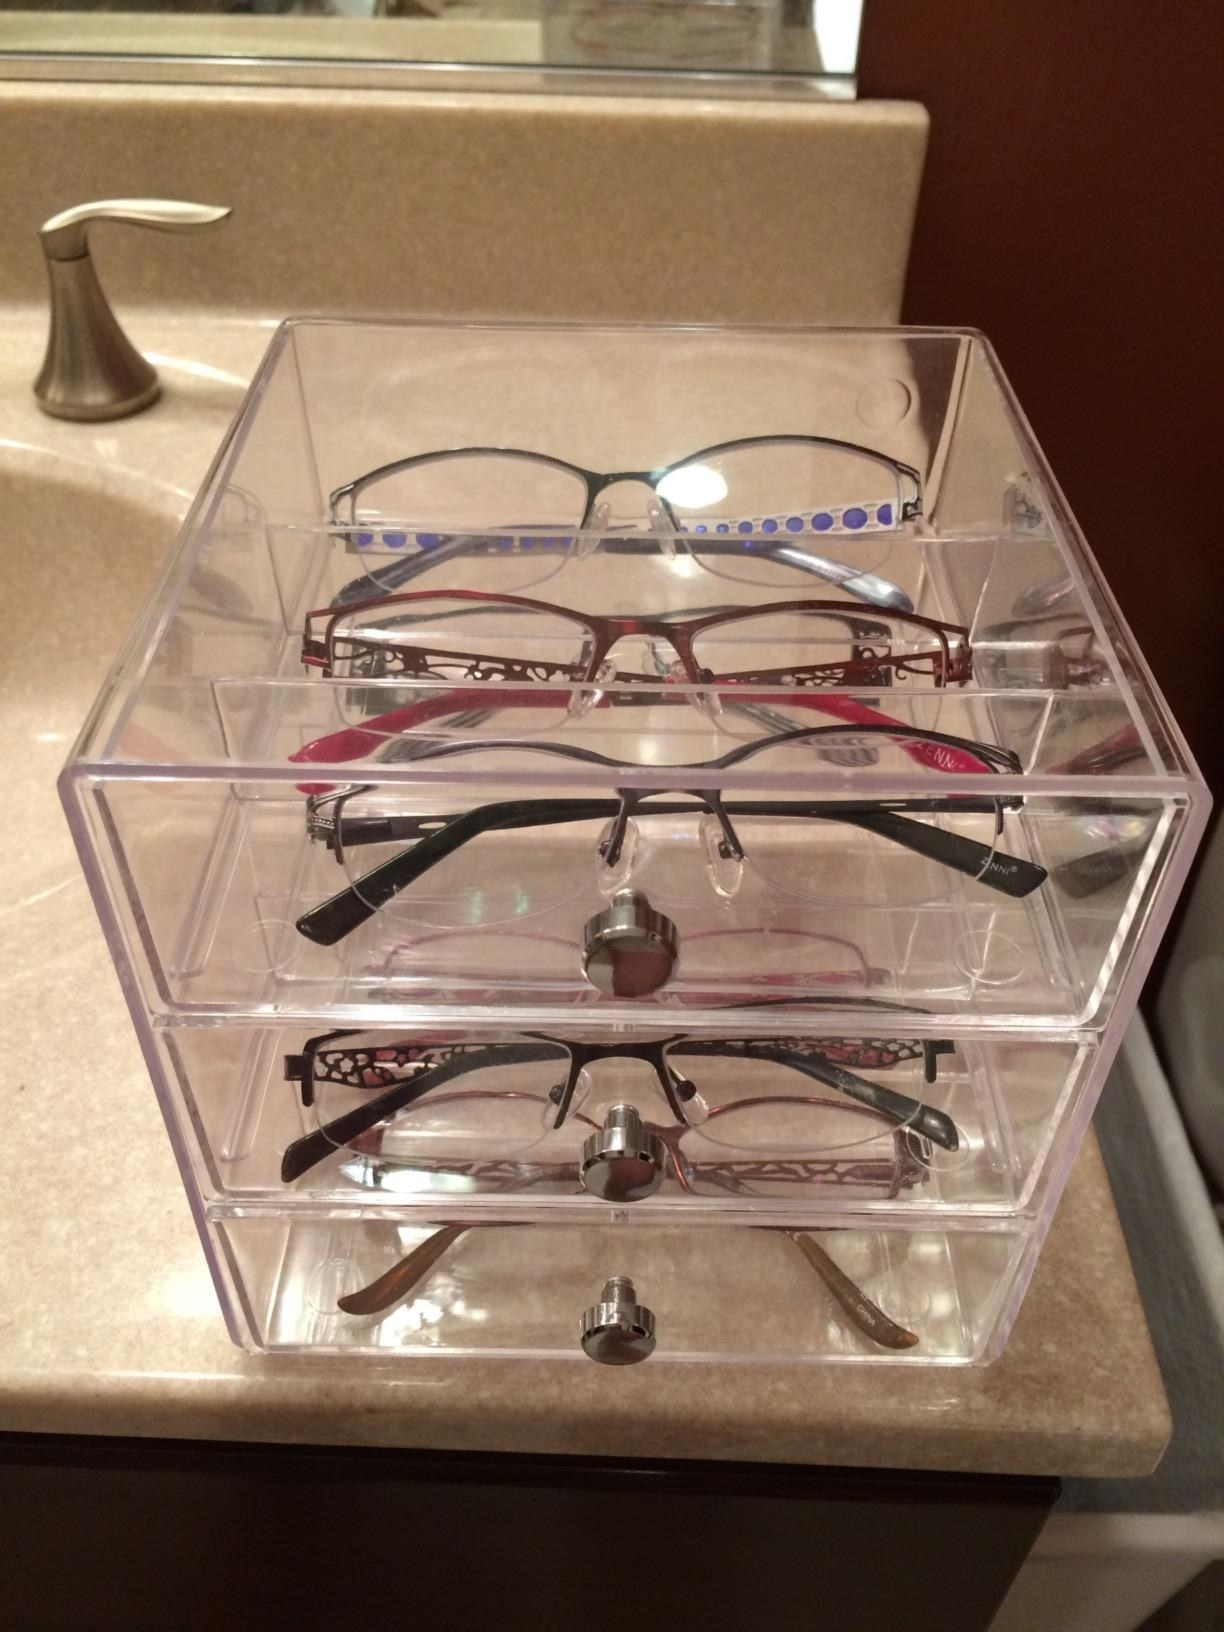 a collection of eye classes organized throughout the the shelves of the acrylic drawer